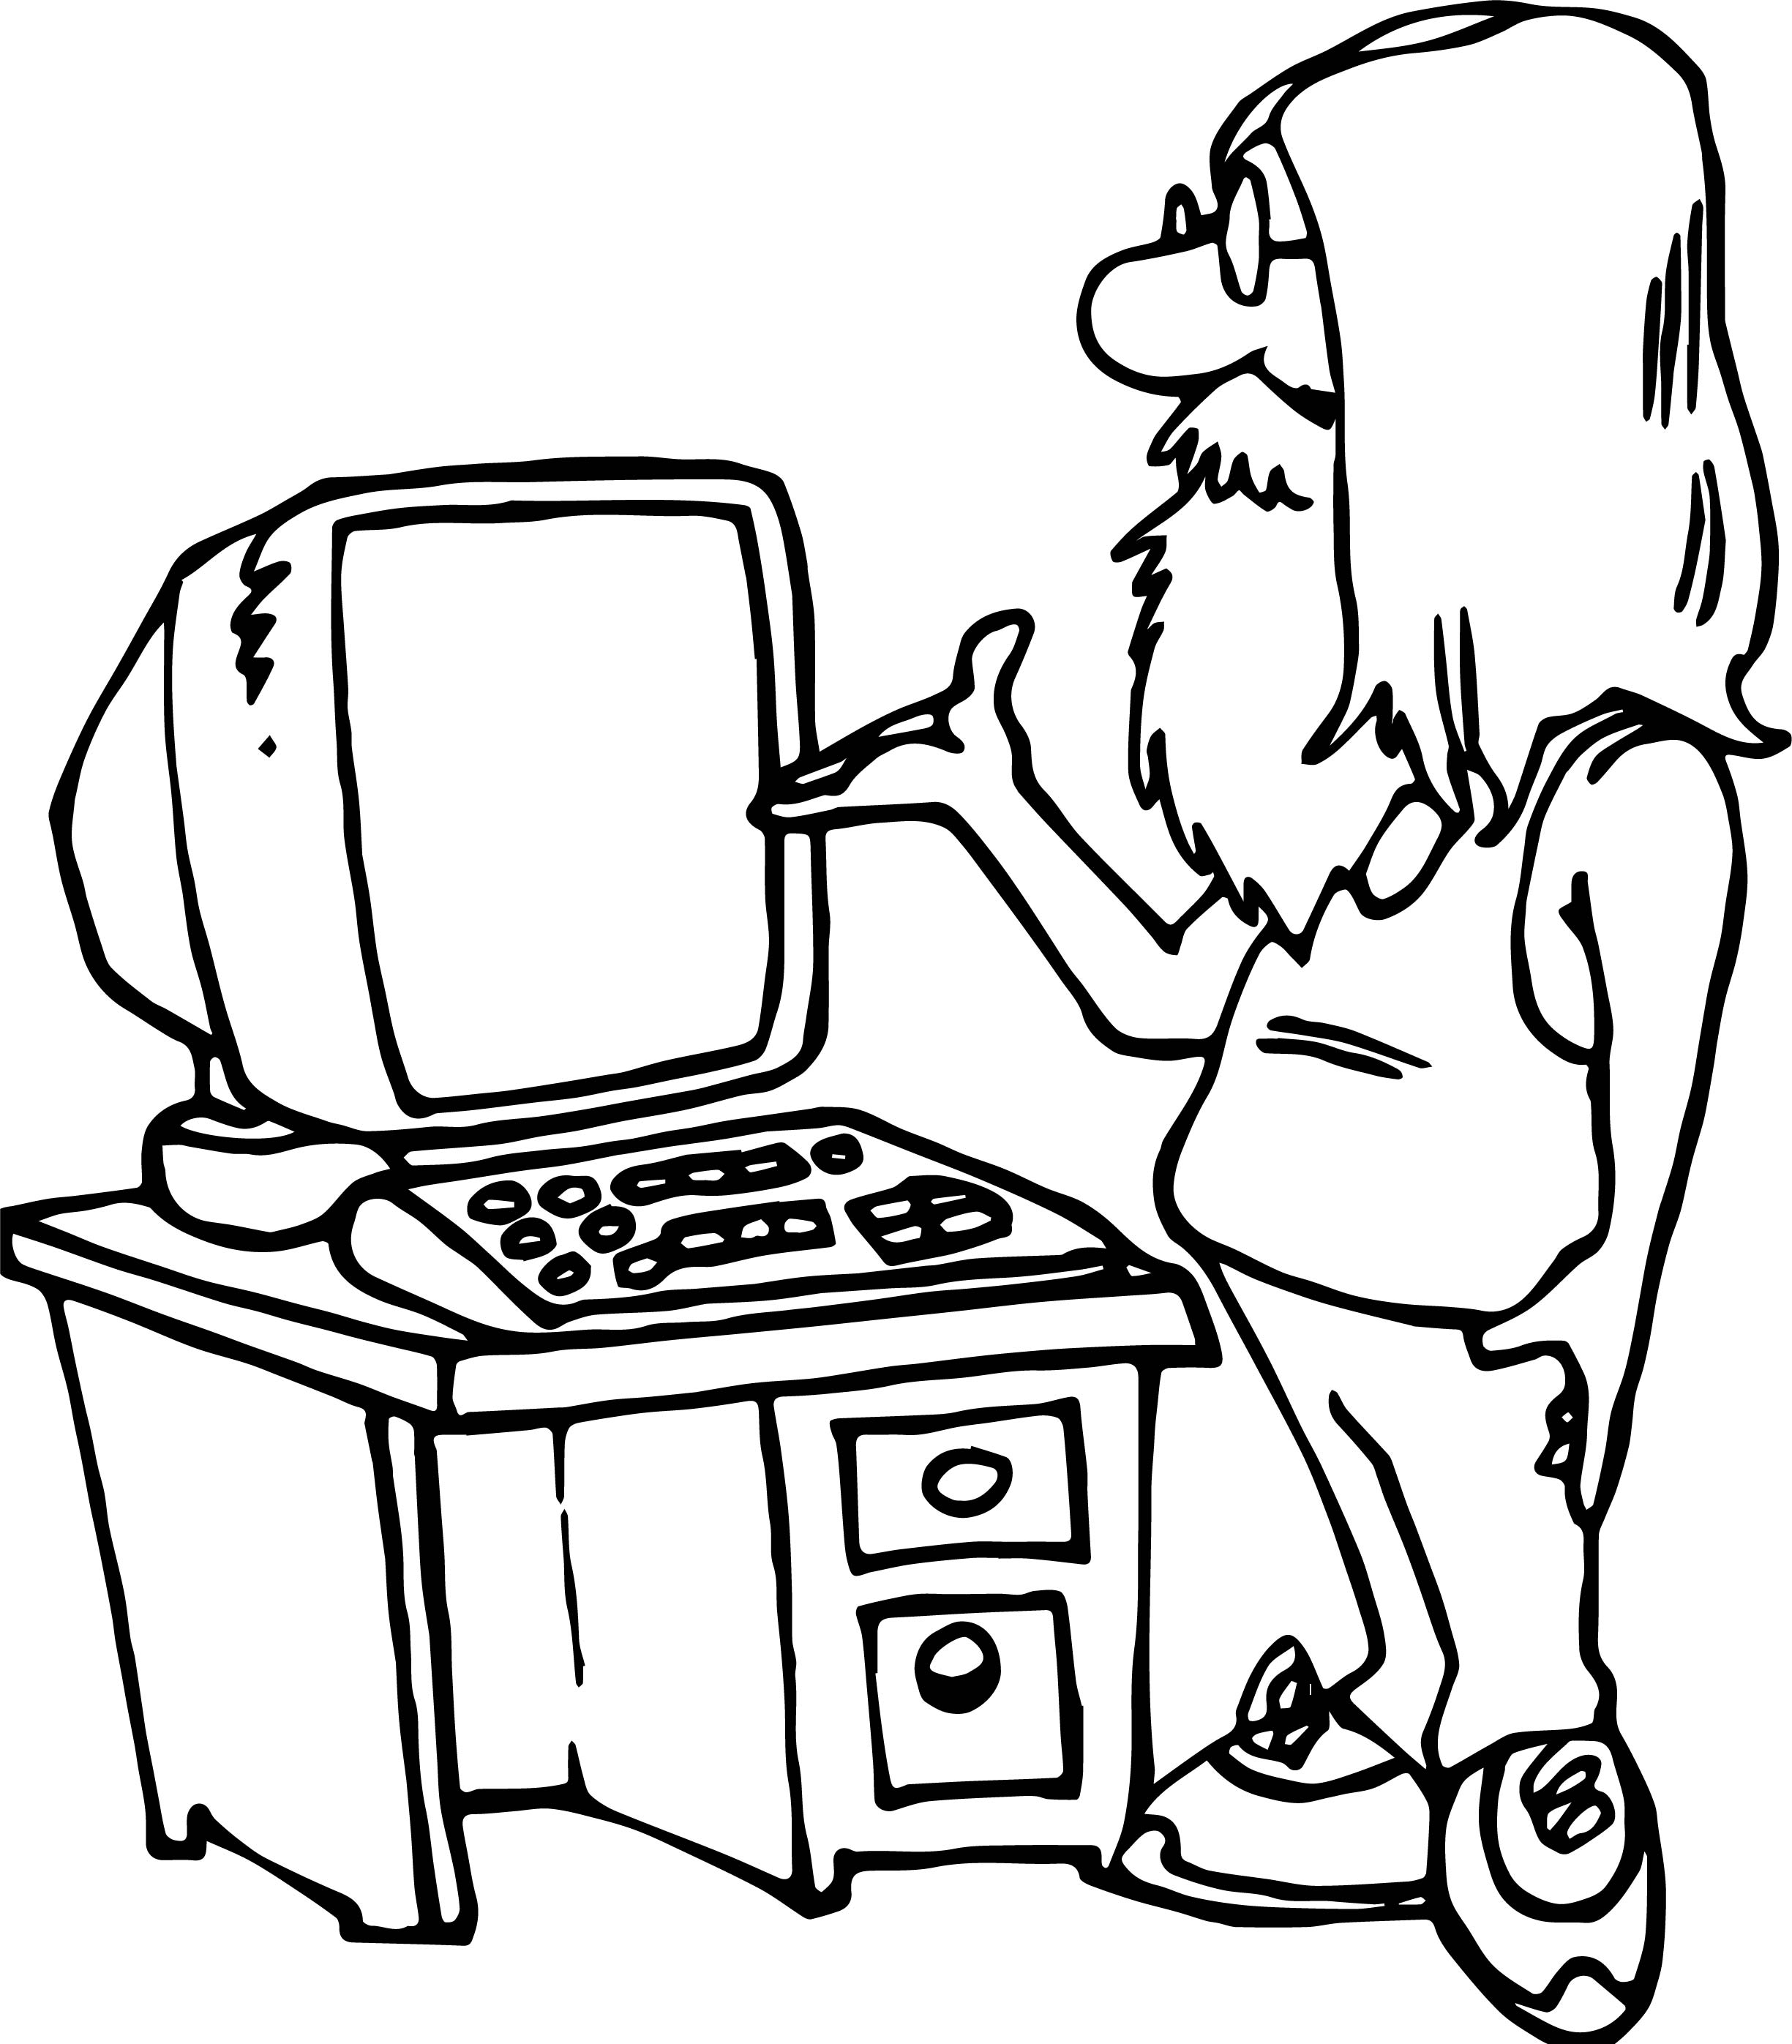 Playing Computer Games Man Coloring Page